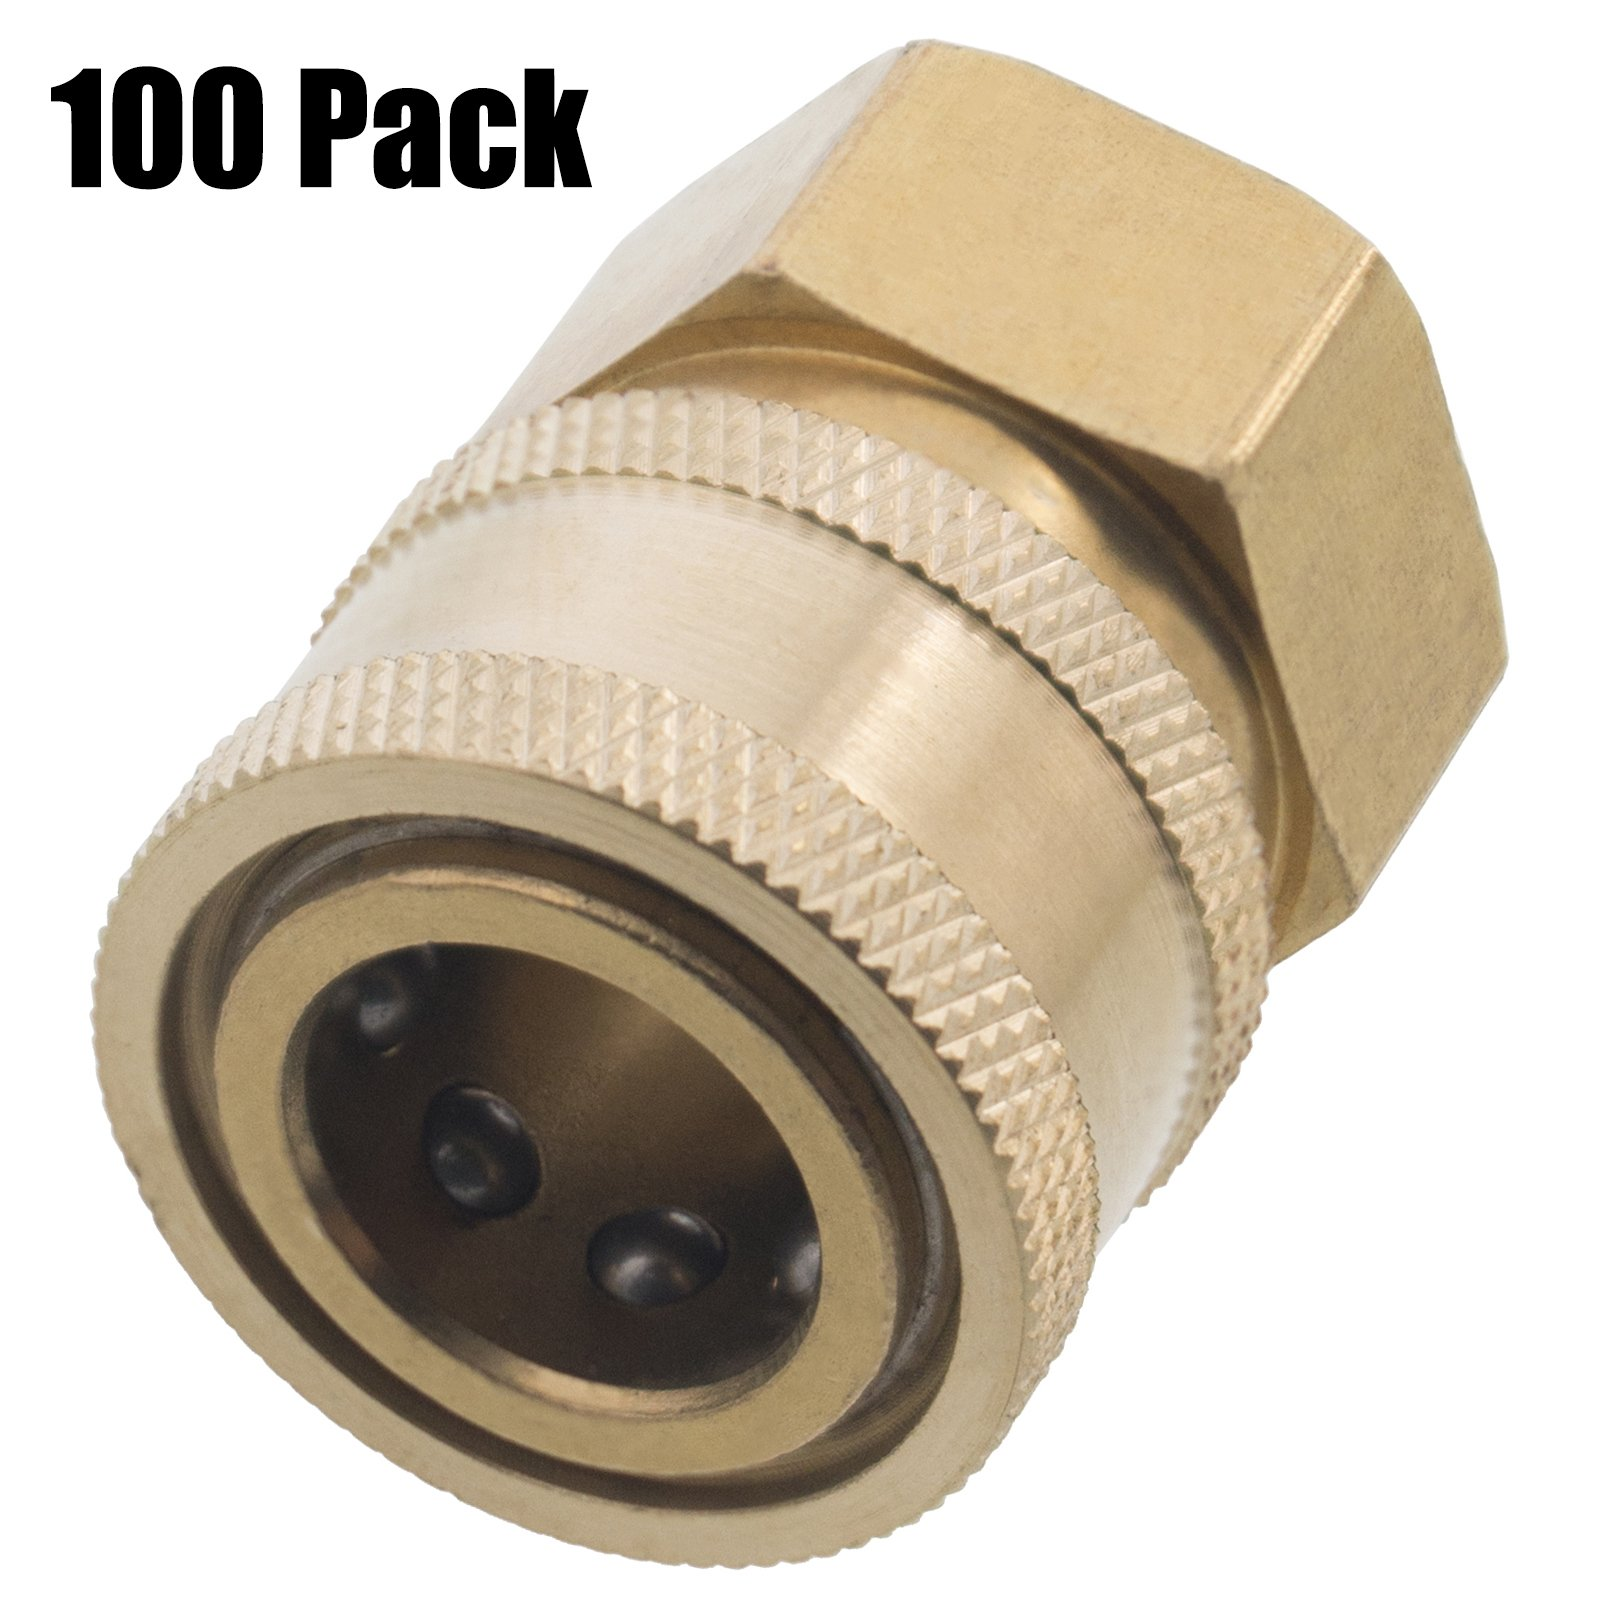 Erie Tools 100 3/8in. FPT Female Brass Socket Quick Connect Coupler 4000 PSI 10 GPM for Pressure Washer Nozzle Gun Hose Wand by Erie Tools